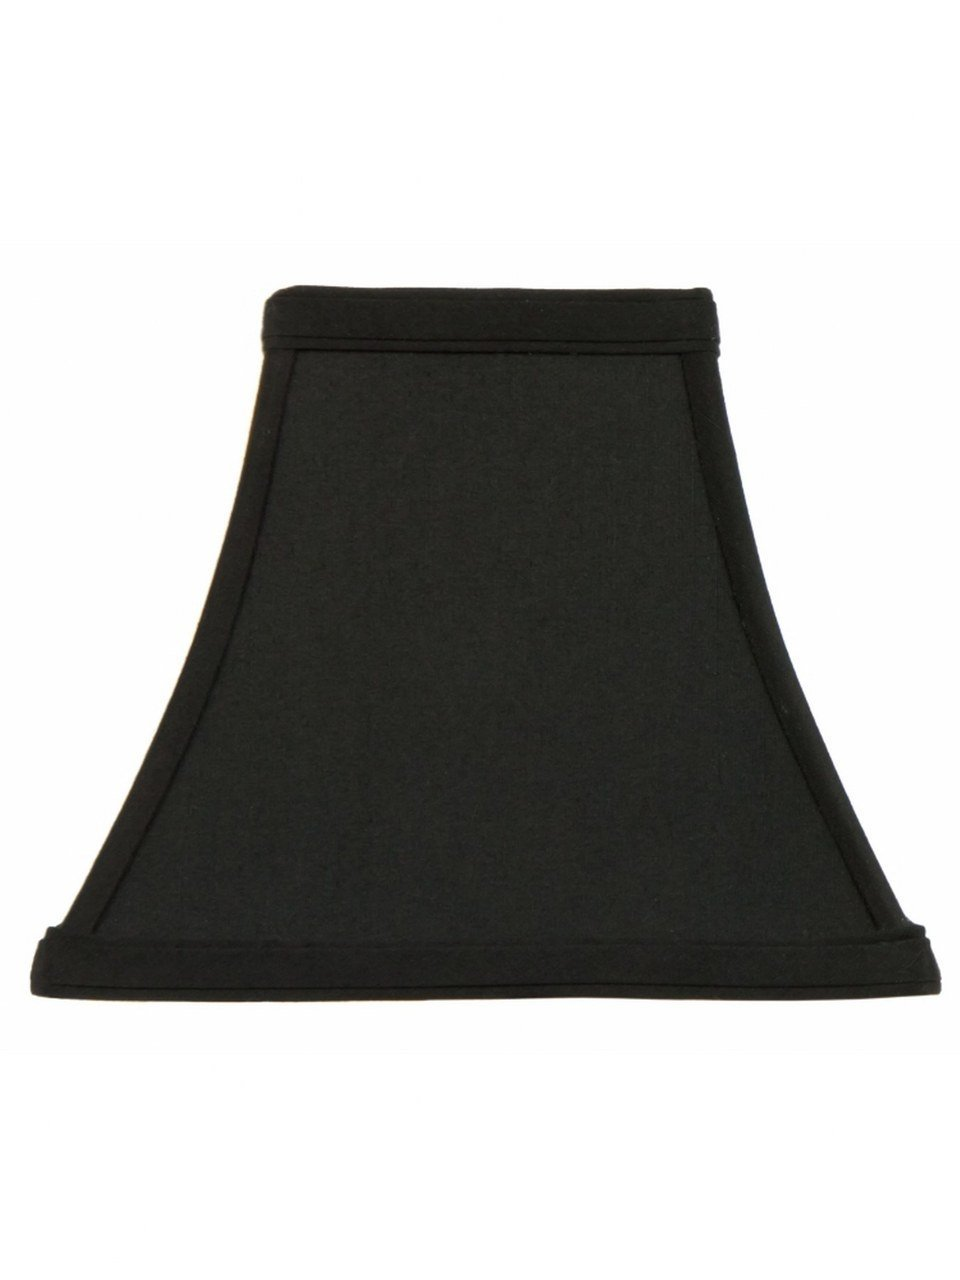 Upgradelights 12 Inch Black Silk Tapered Square Bell Lampshade Replacement (6x12x10)